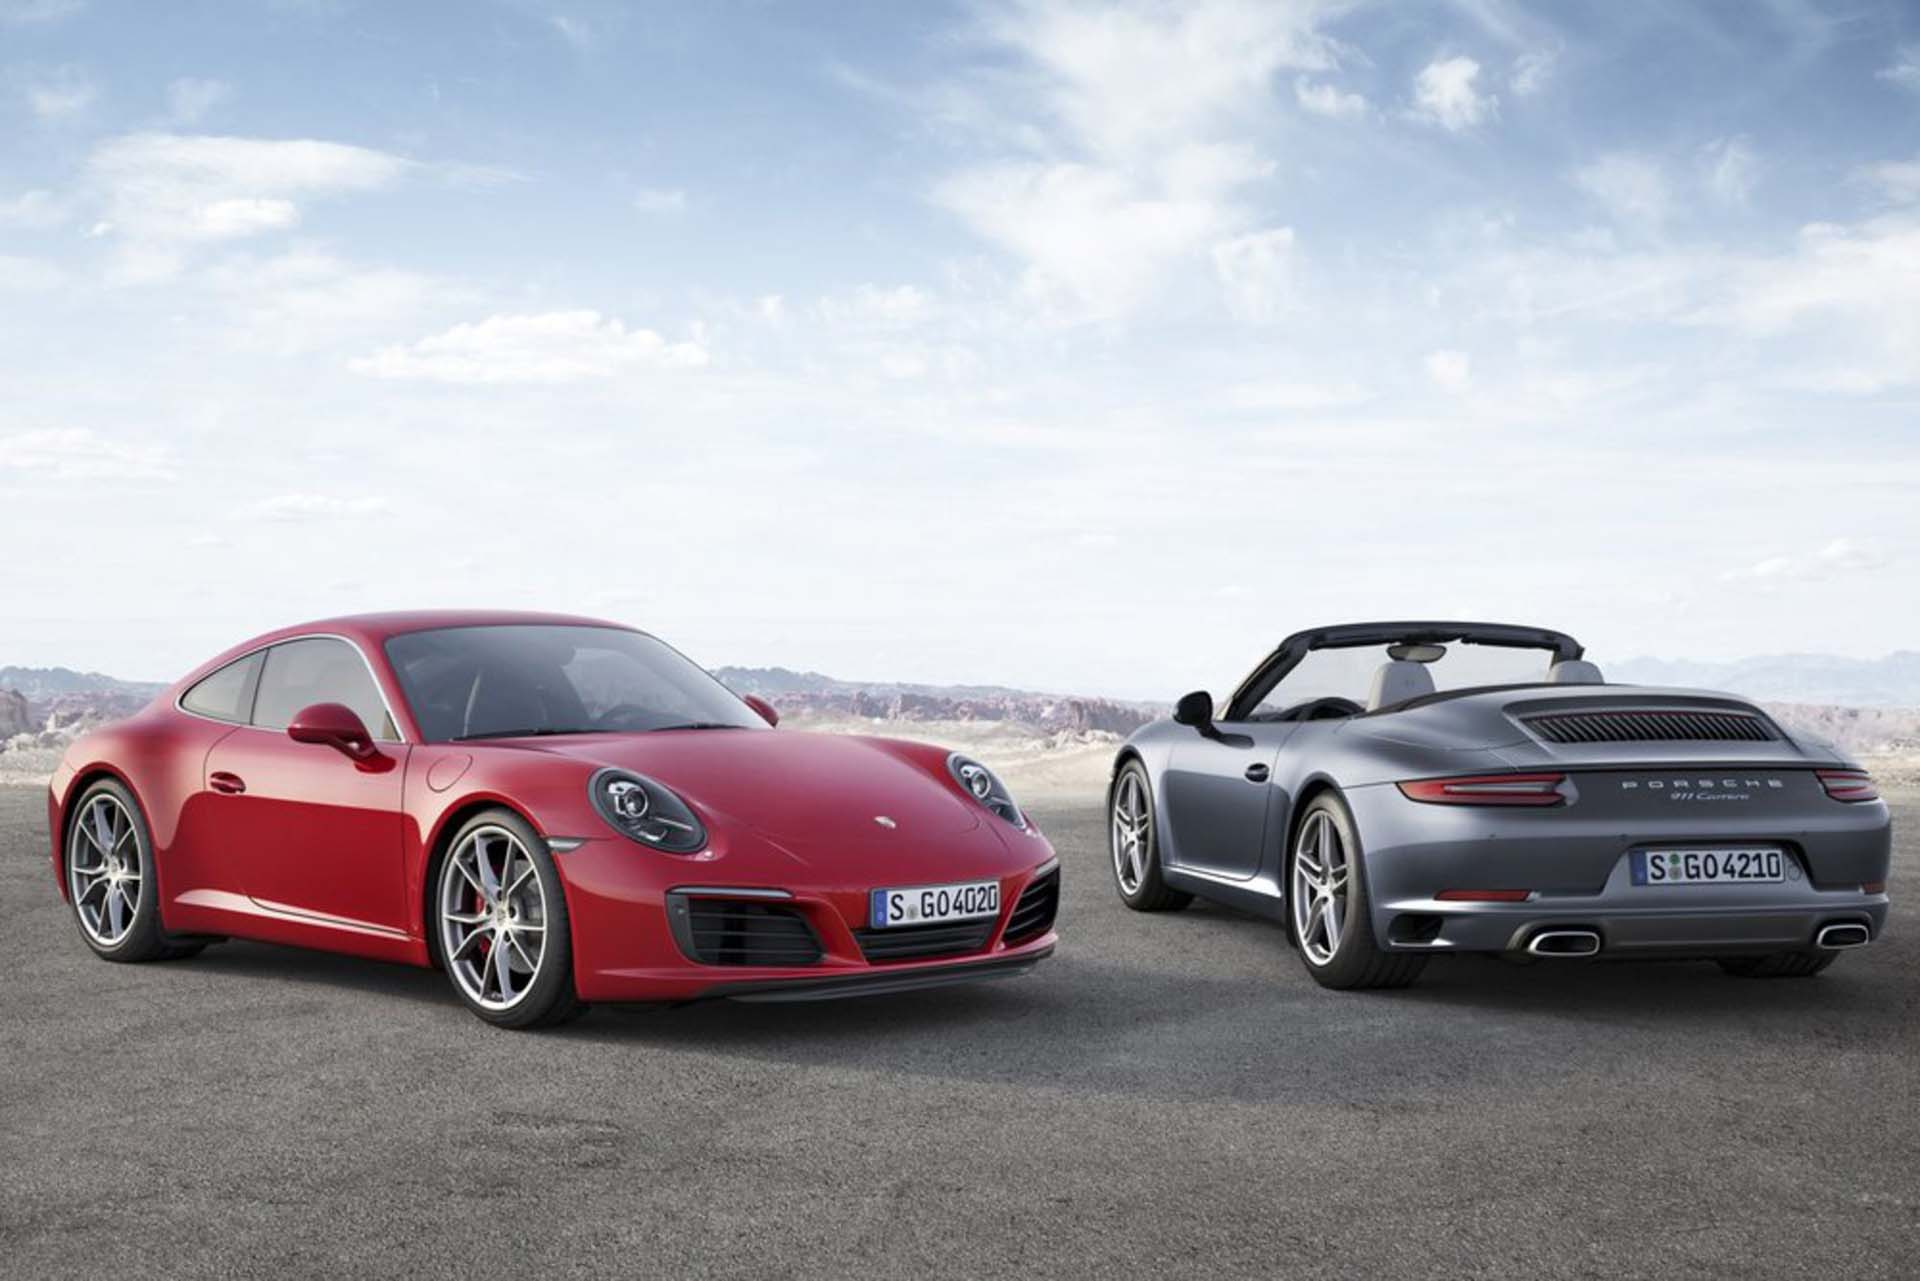 Incremental change is the 911 catchphrase, the honing of an original ideal over and over again until it's better: more efficient, faster, easier to drive. Somewhere in the 1970s, turbocharged power became the best way to get 911s to go quickly (in a straight line anyway). Now, the Porsche turbo era has fully arrived. Starting with the just-announced facelifted version of the 991-chassis Porsche 911, all Carreras will be turbocharged. The base engine is a 367-hp twin-turbo 3.0L flat-six, the S models get 414-hp version, and then of course there are the full Turbo and Turbo S at the top end. Expect the GT3 to remain the last unboosted 911.